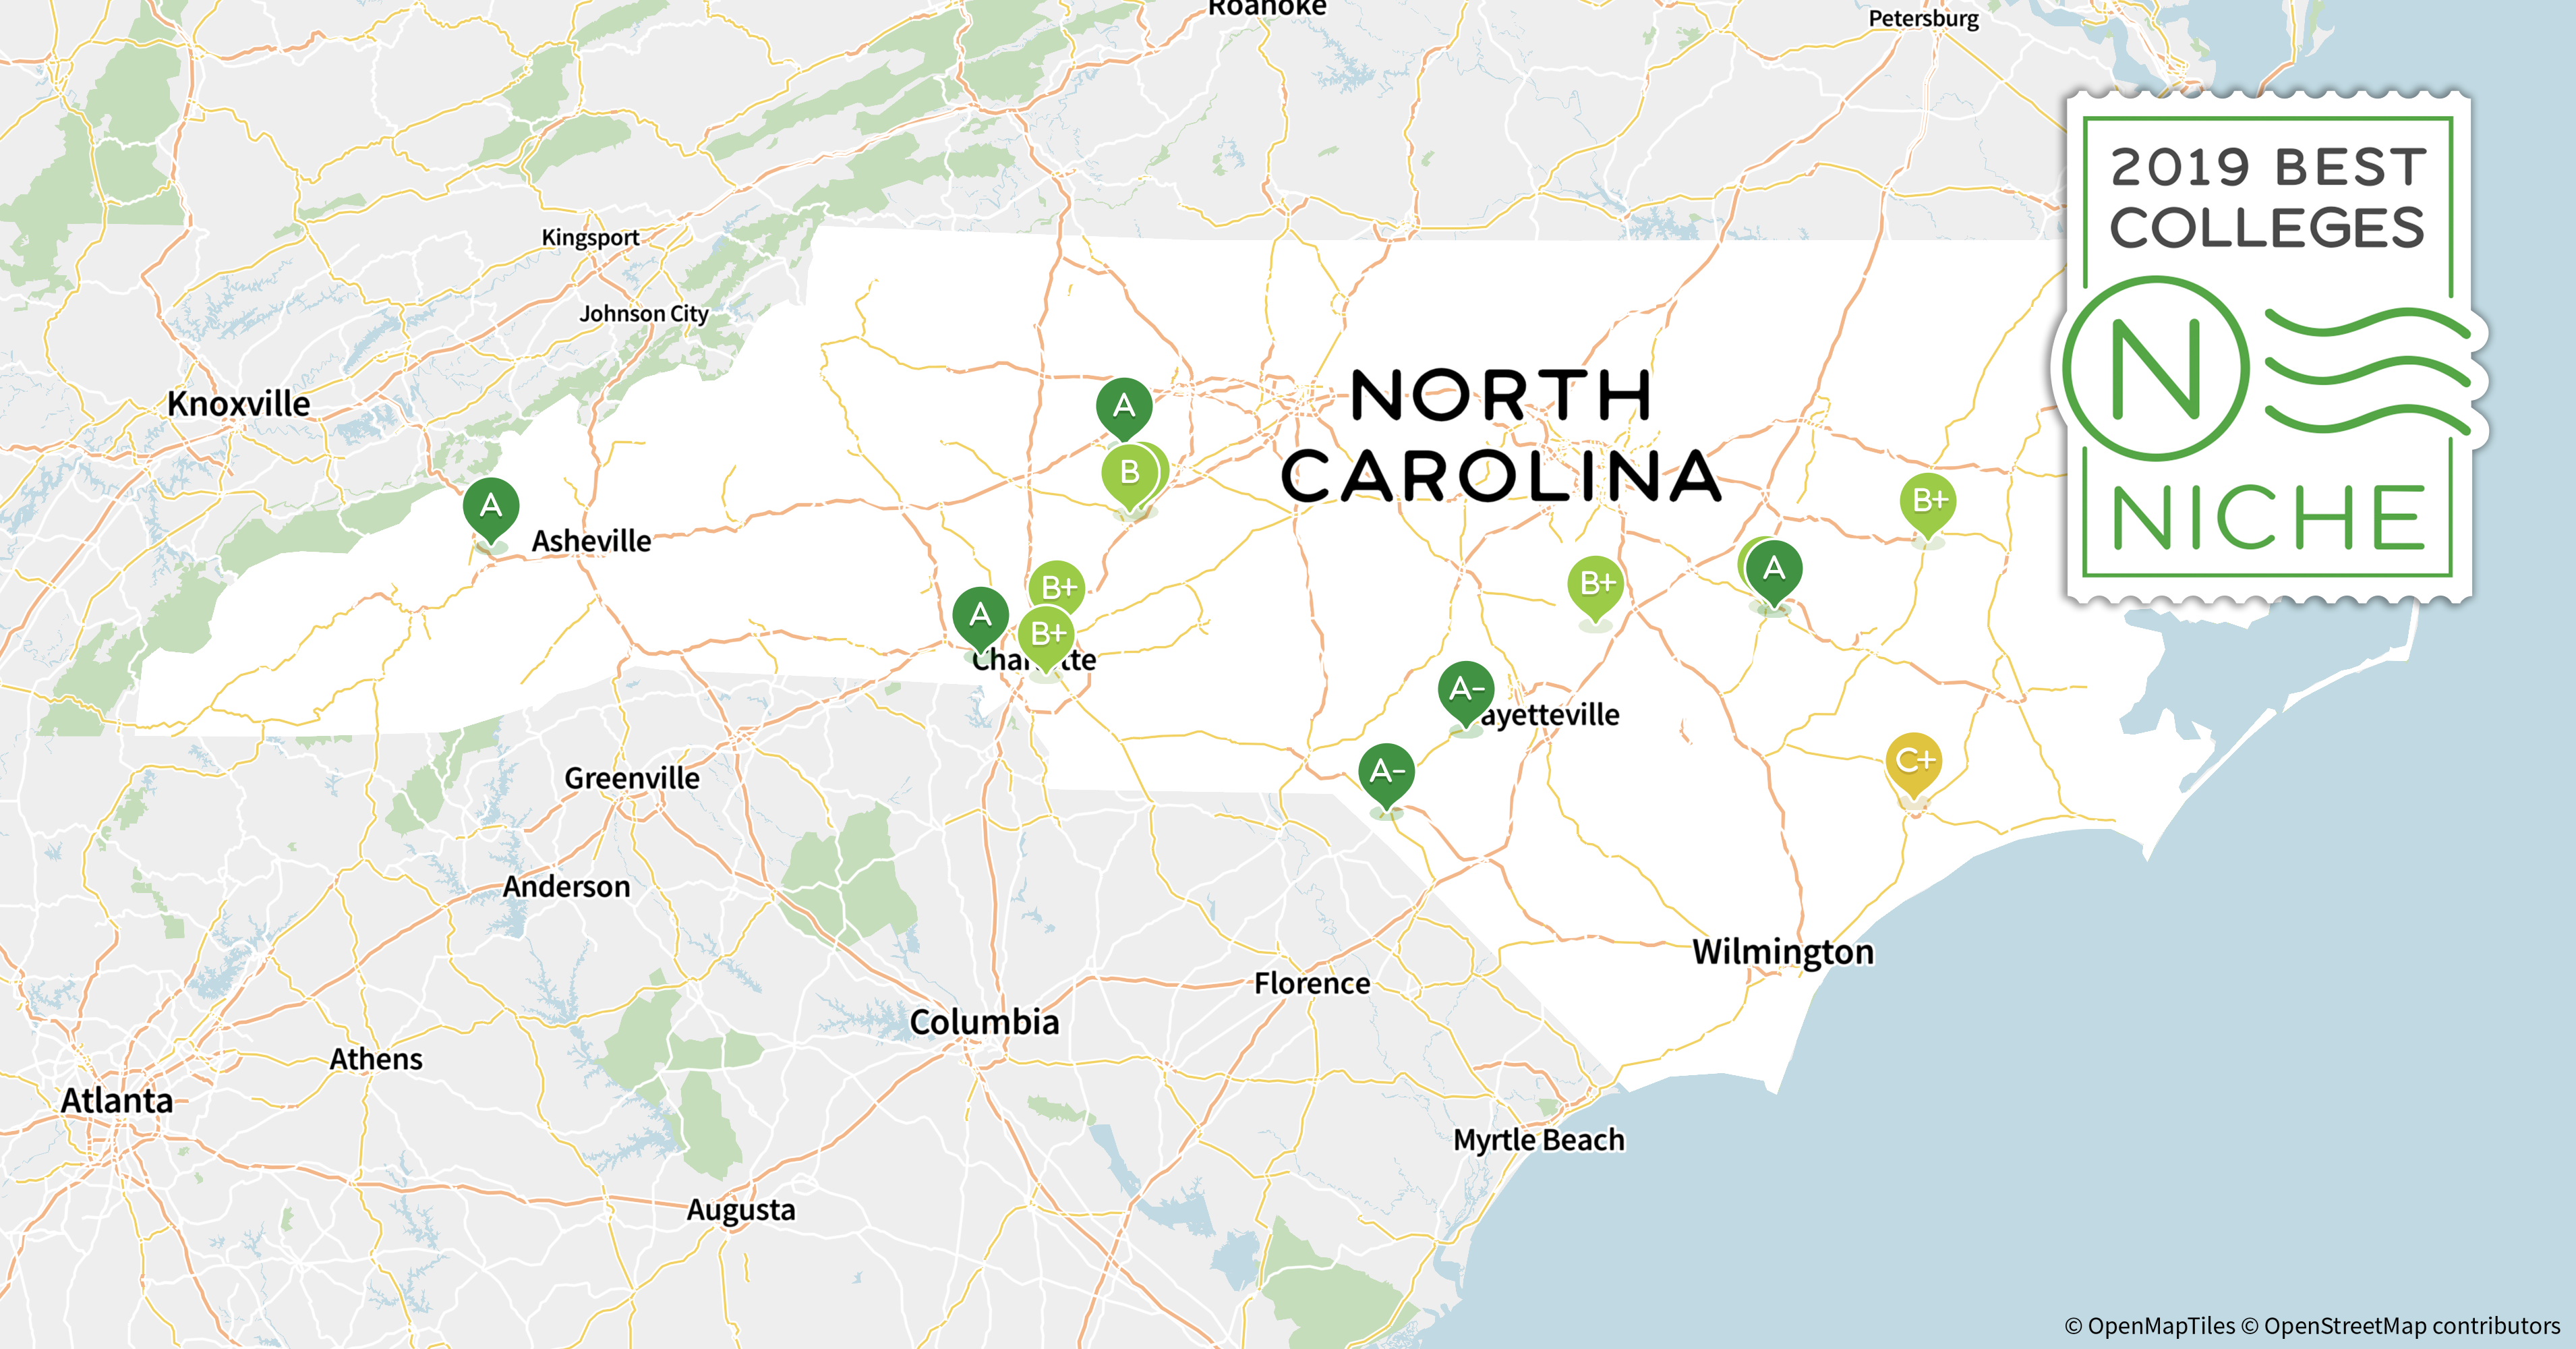 2019 Best Colleges in North Carolina - Niche